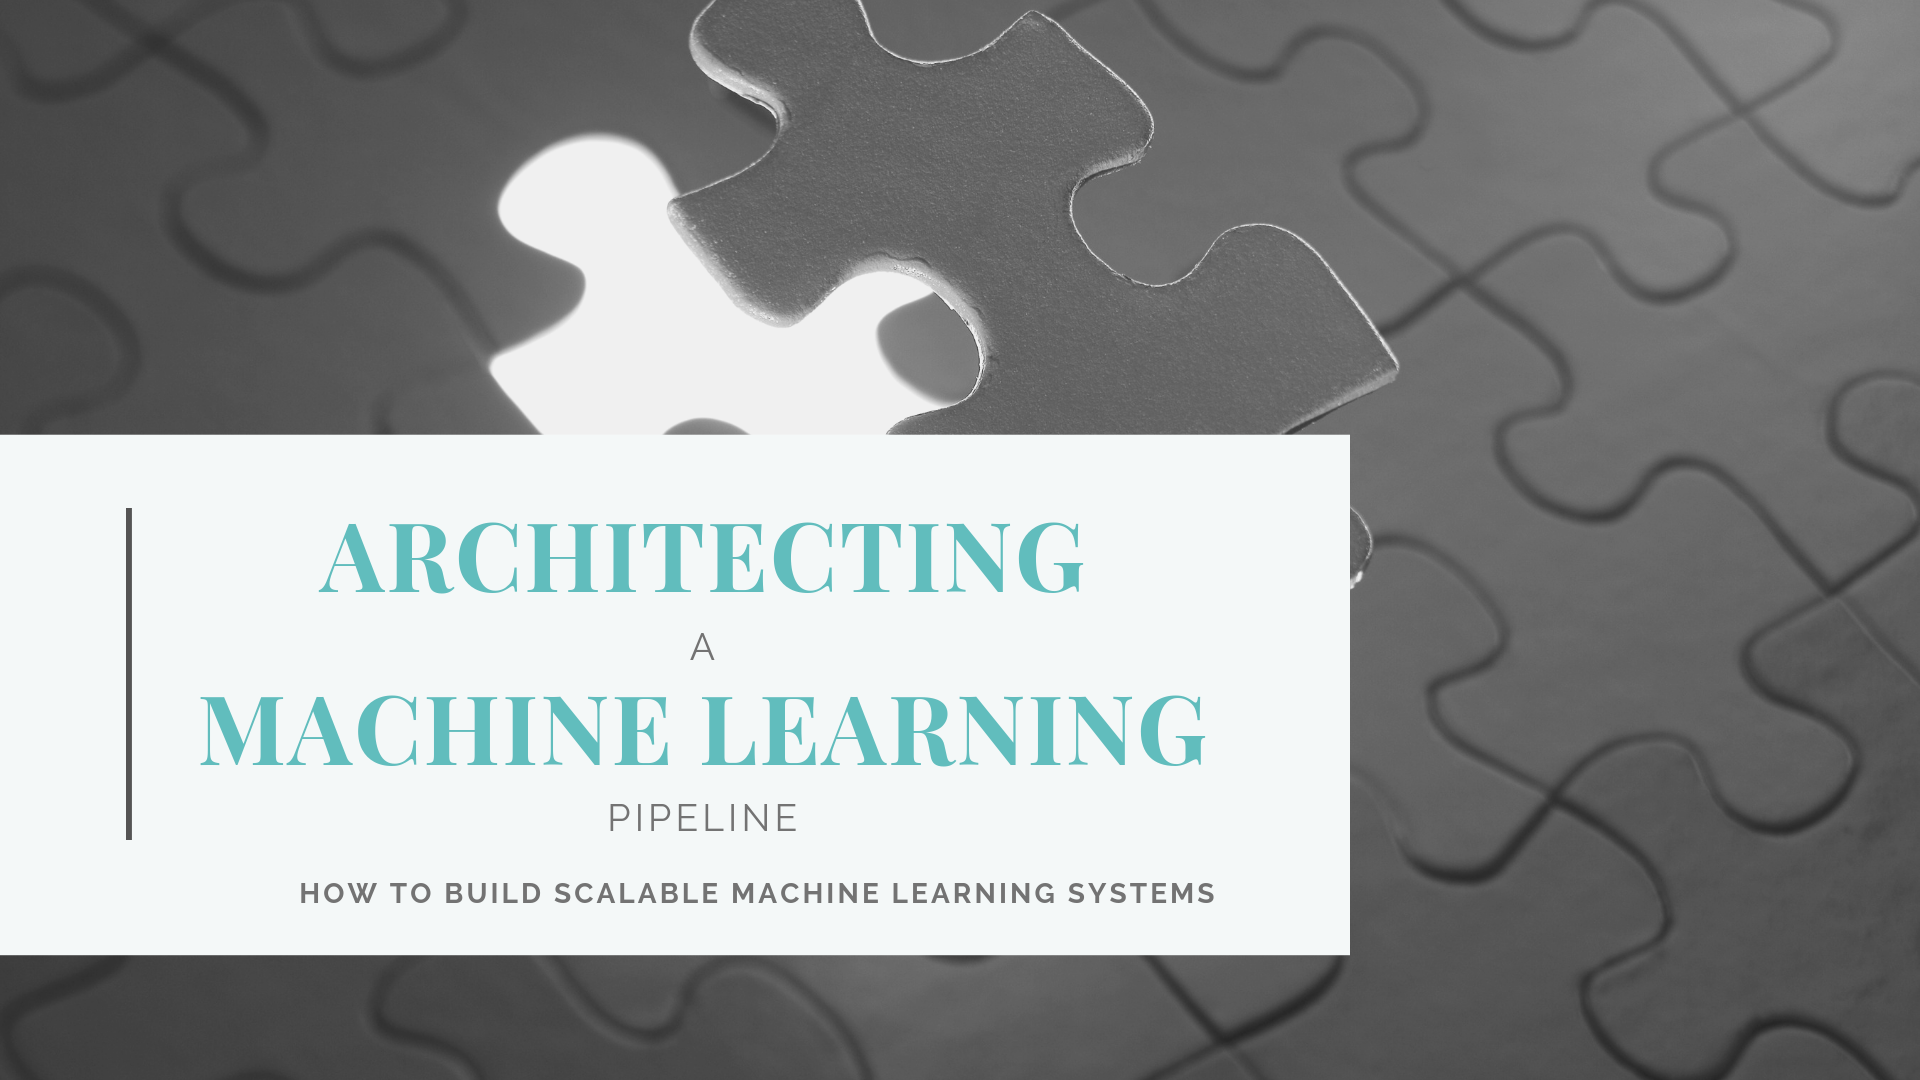 Architecting A Machine Learning Pipeline By Semi Koen Towards Data Science